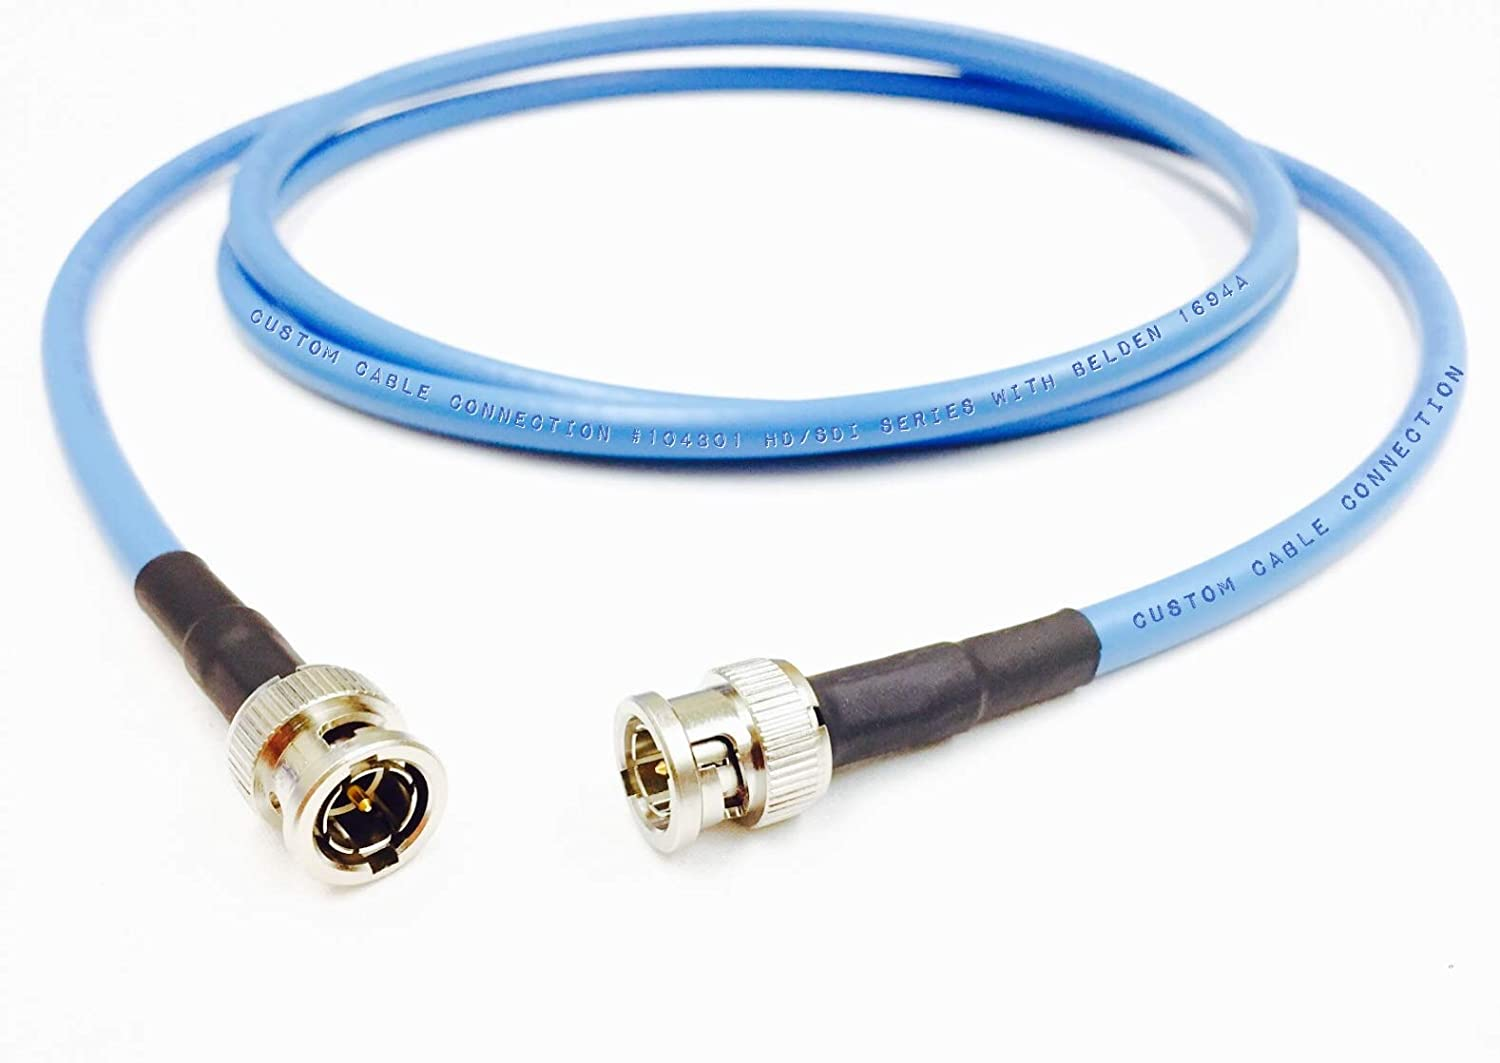 Custom Cable Connection 3 Foot Belden 1694A 6G HD-SDI RG6 BNC Cable (75 Ohm) Blue Jacket